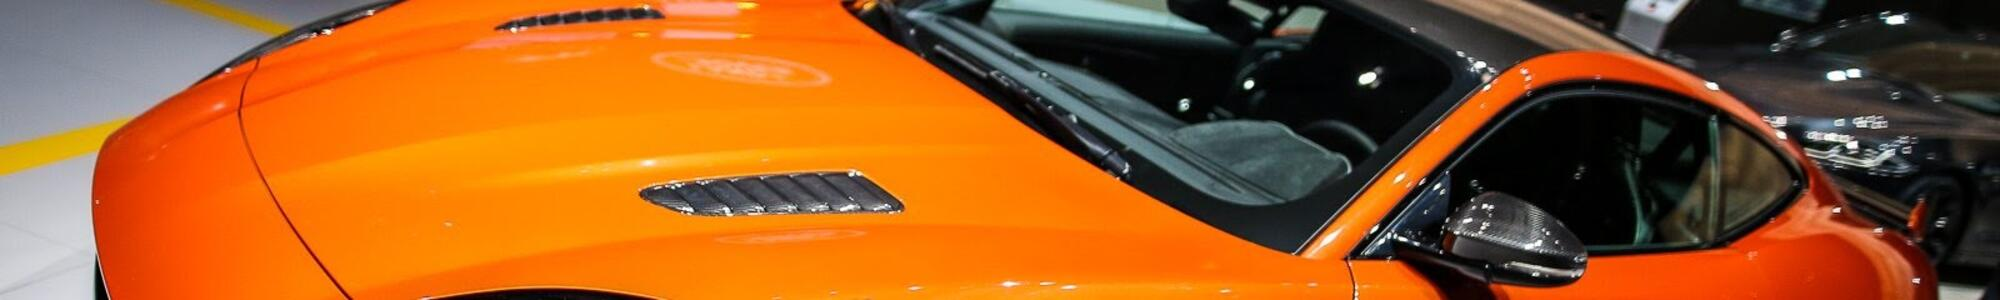 Motorshow Offer at Bologna Hotel nearby Exhibition Centre with shuttle service